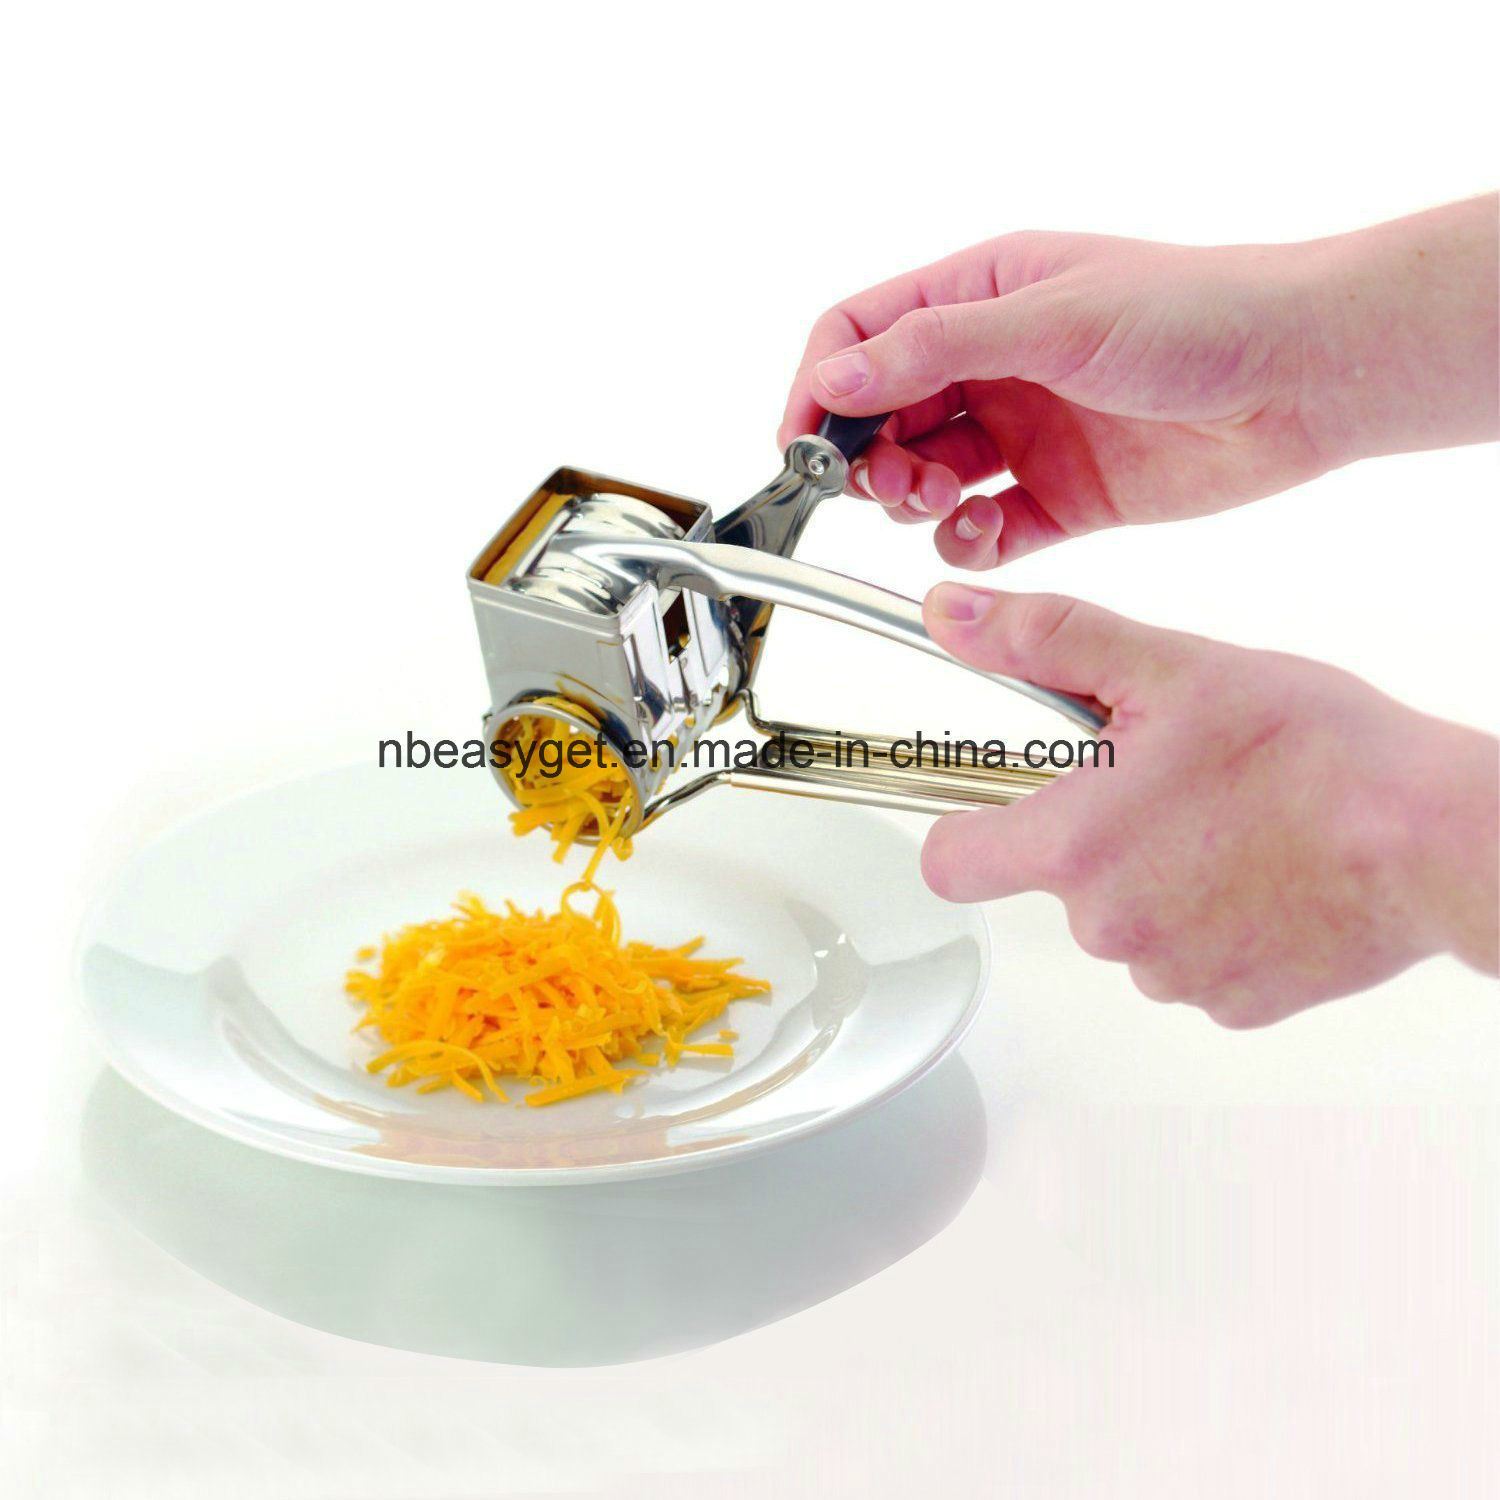 Stainless Steel Cheese Grater, Rotary Razor Sharp Blades, Removeable Parts for Fast Cleanup Lightwieght and Versatile, Home Kitchen Tools Esg10140